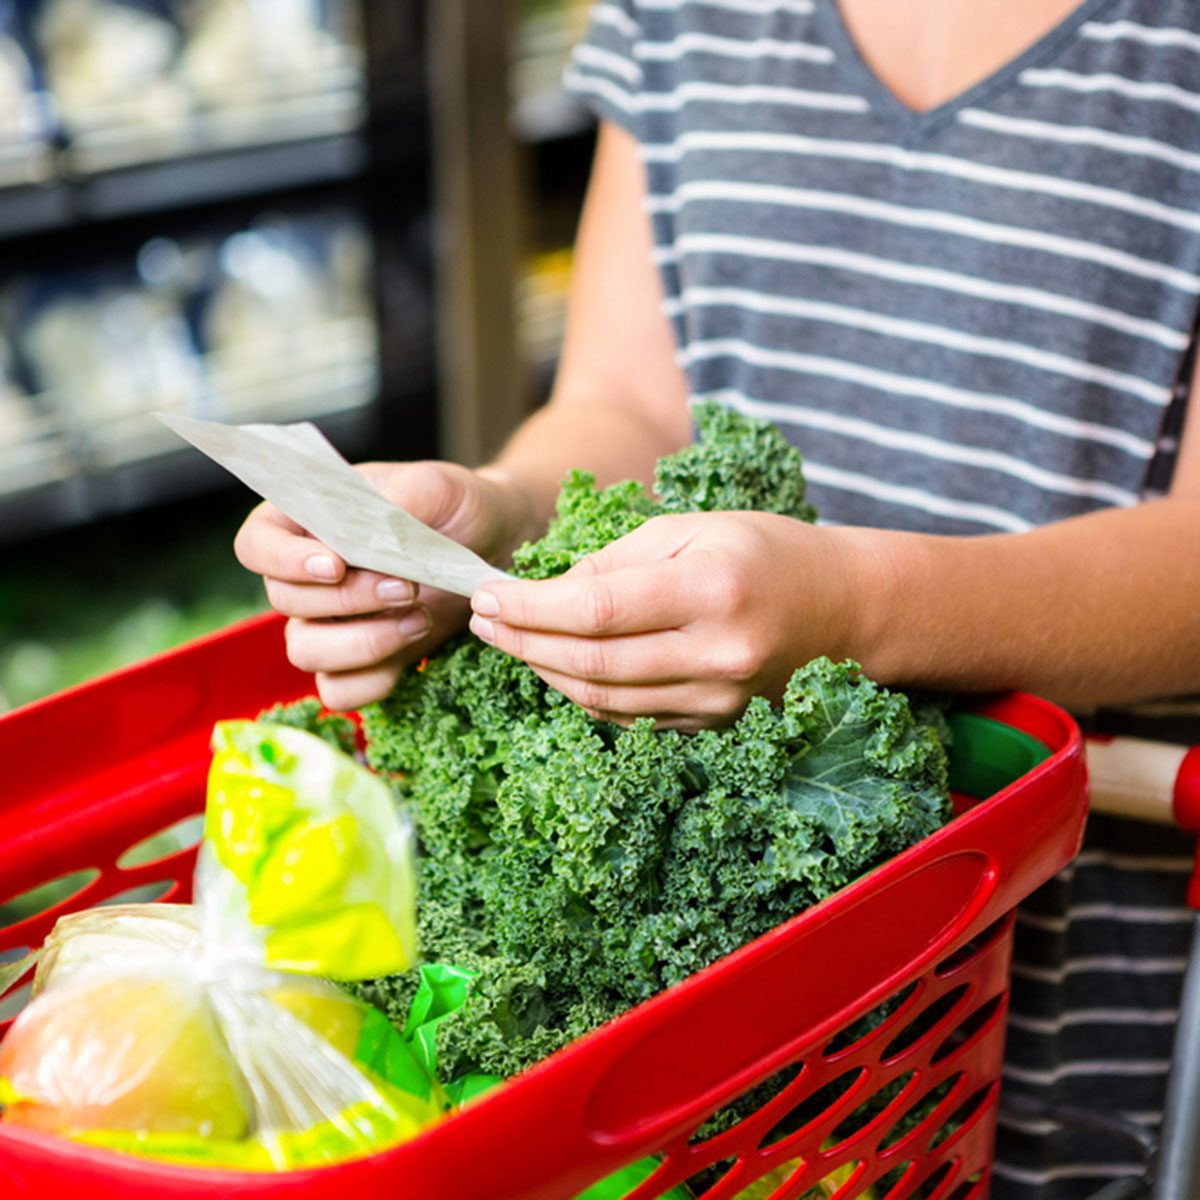 Woman with red basket holding list in supermarket; Shutterstock ID 398707321